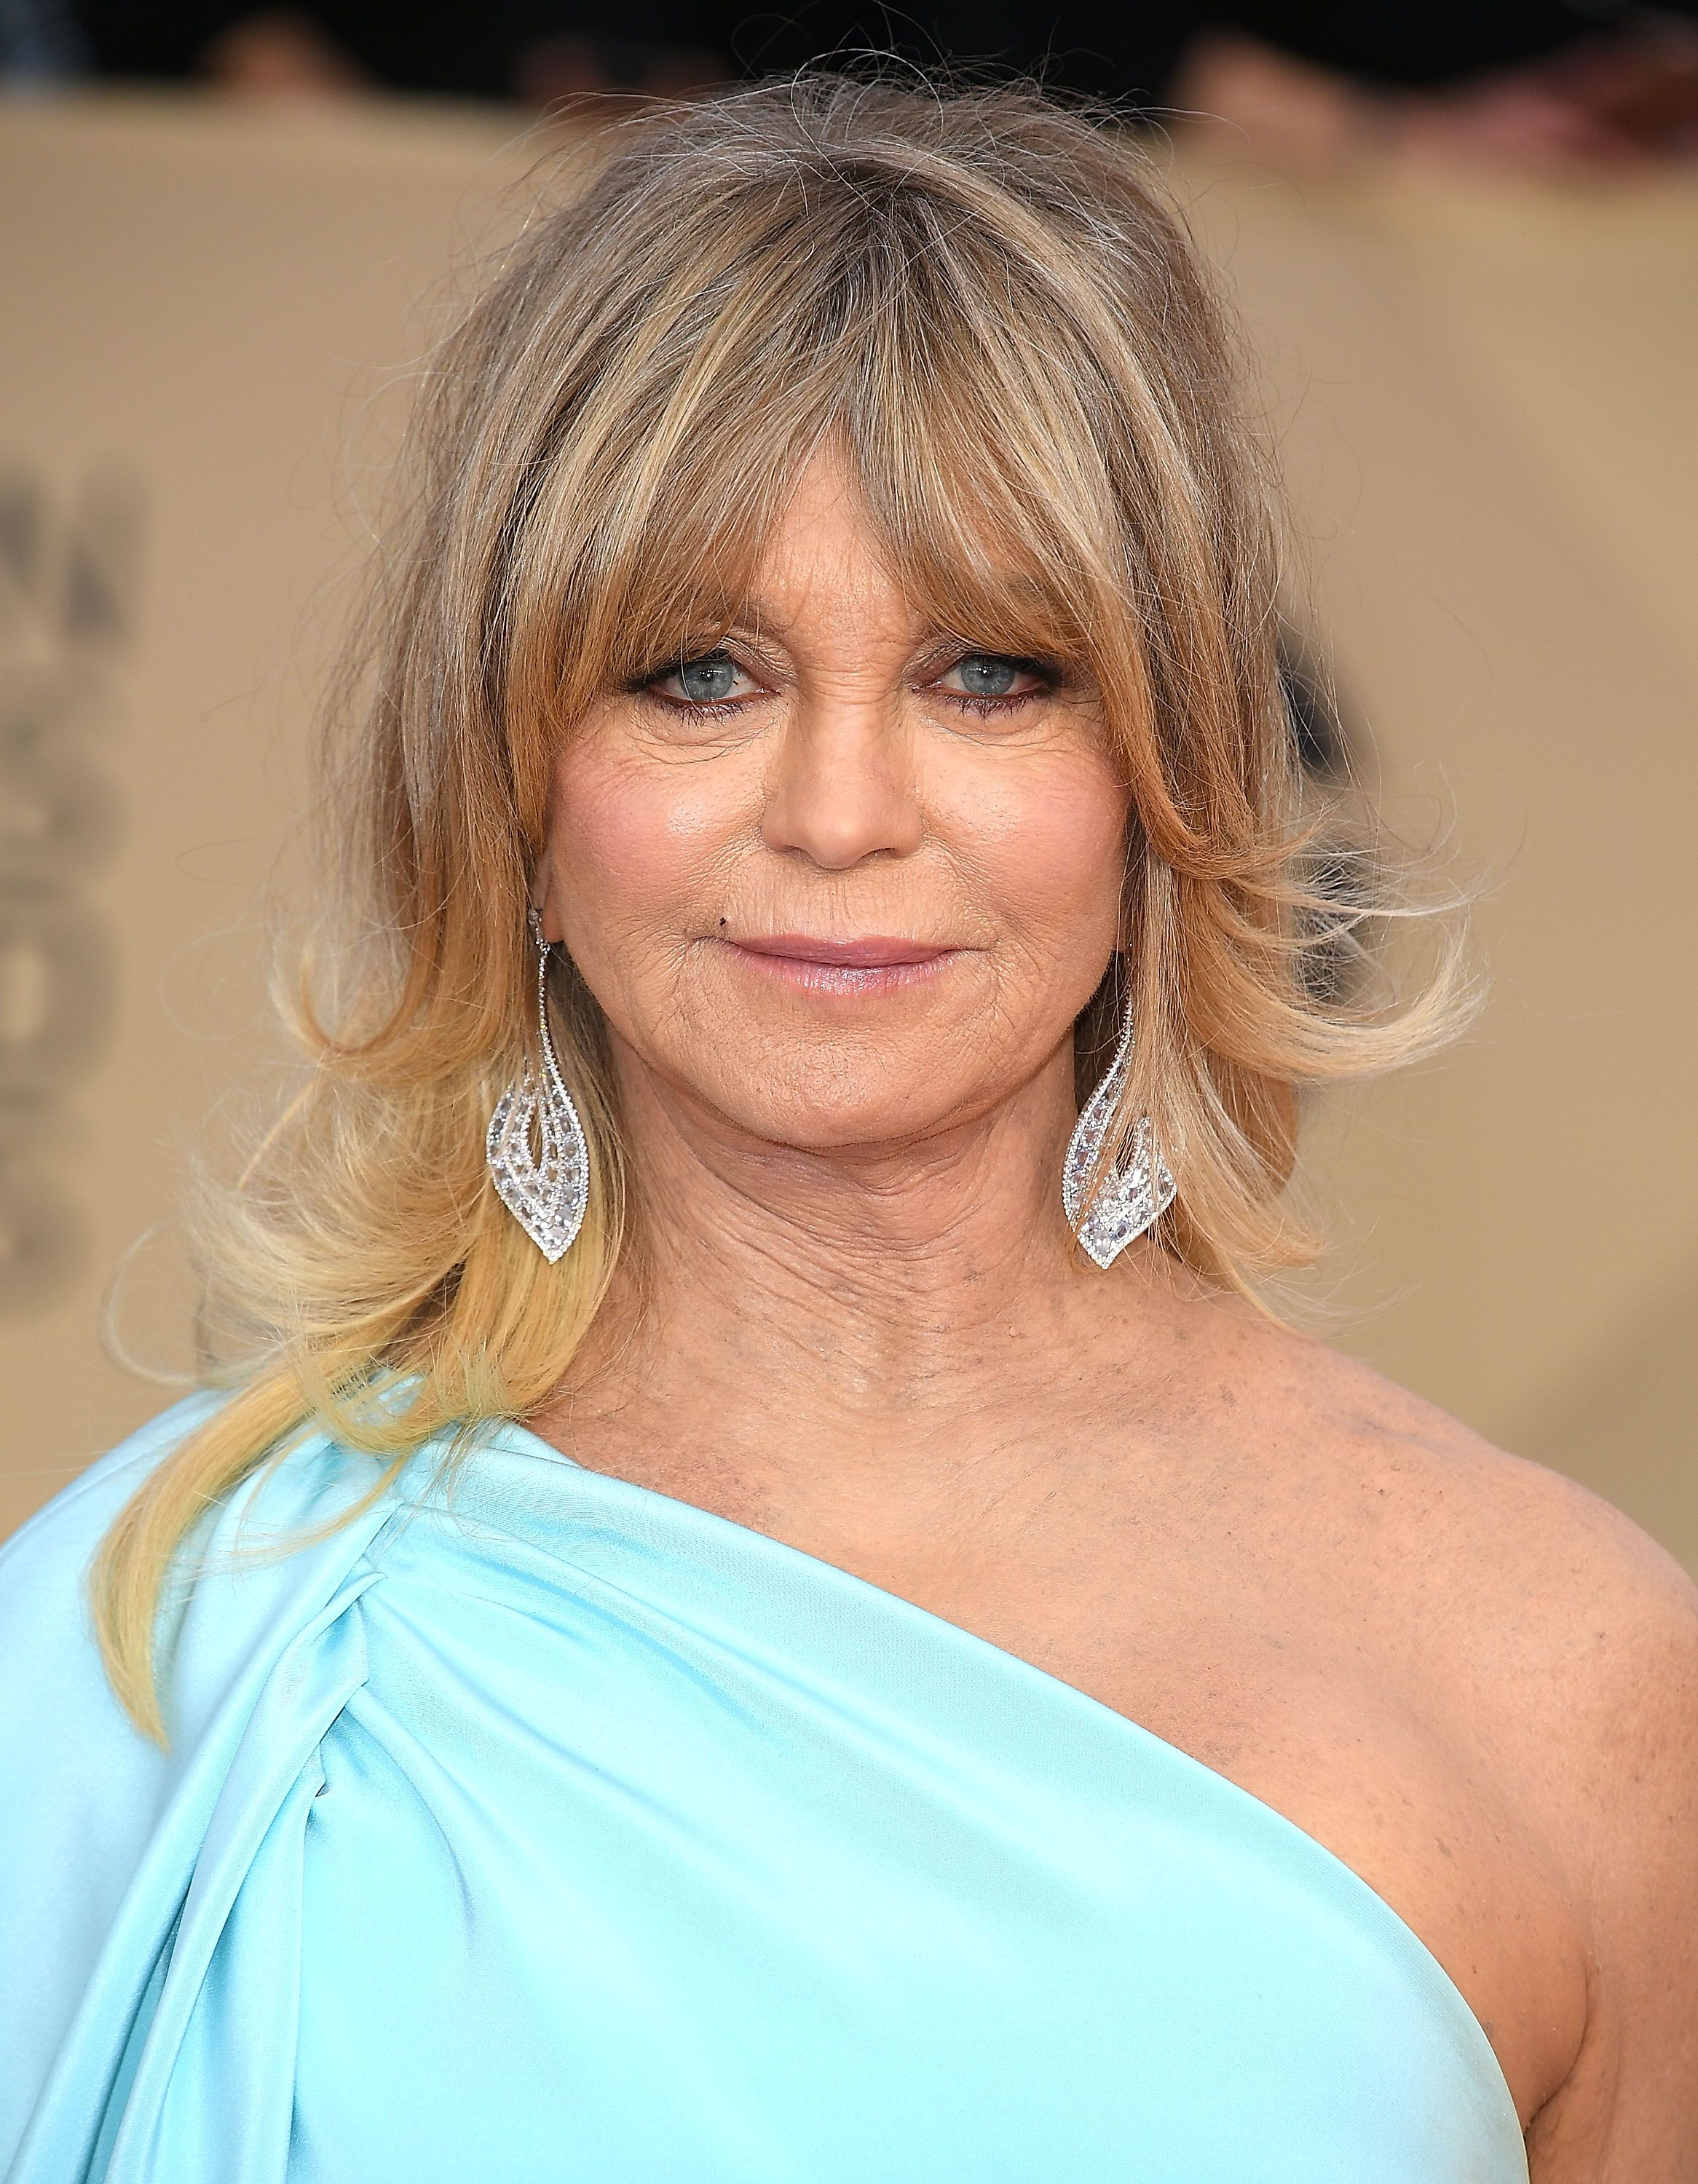 Goldie Hawn at the 24th Annual Screen Actors-Guild Awards at The Shrine Auditorium on January 21, 2018 in Los Angeles, California.   Photo: Getty Images